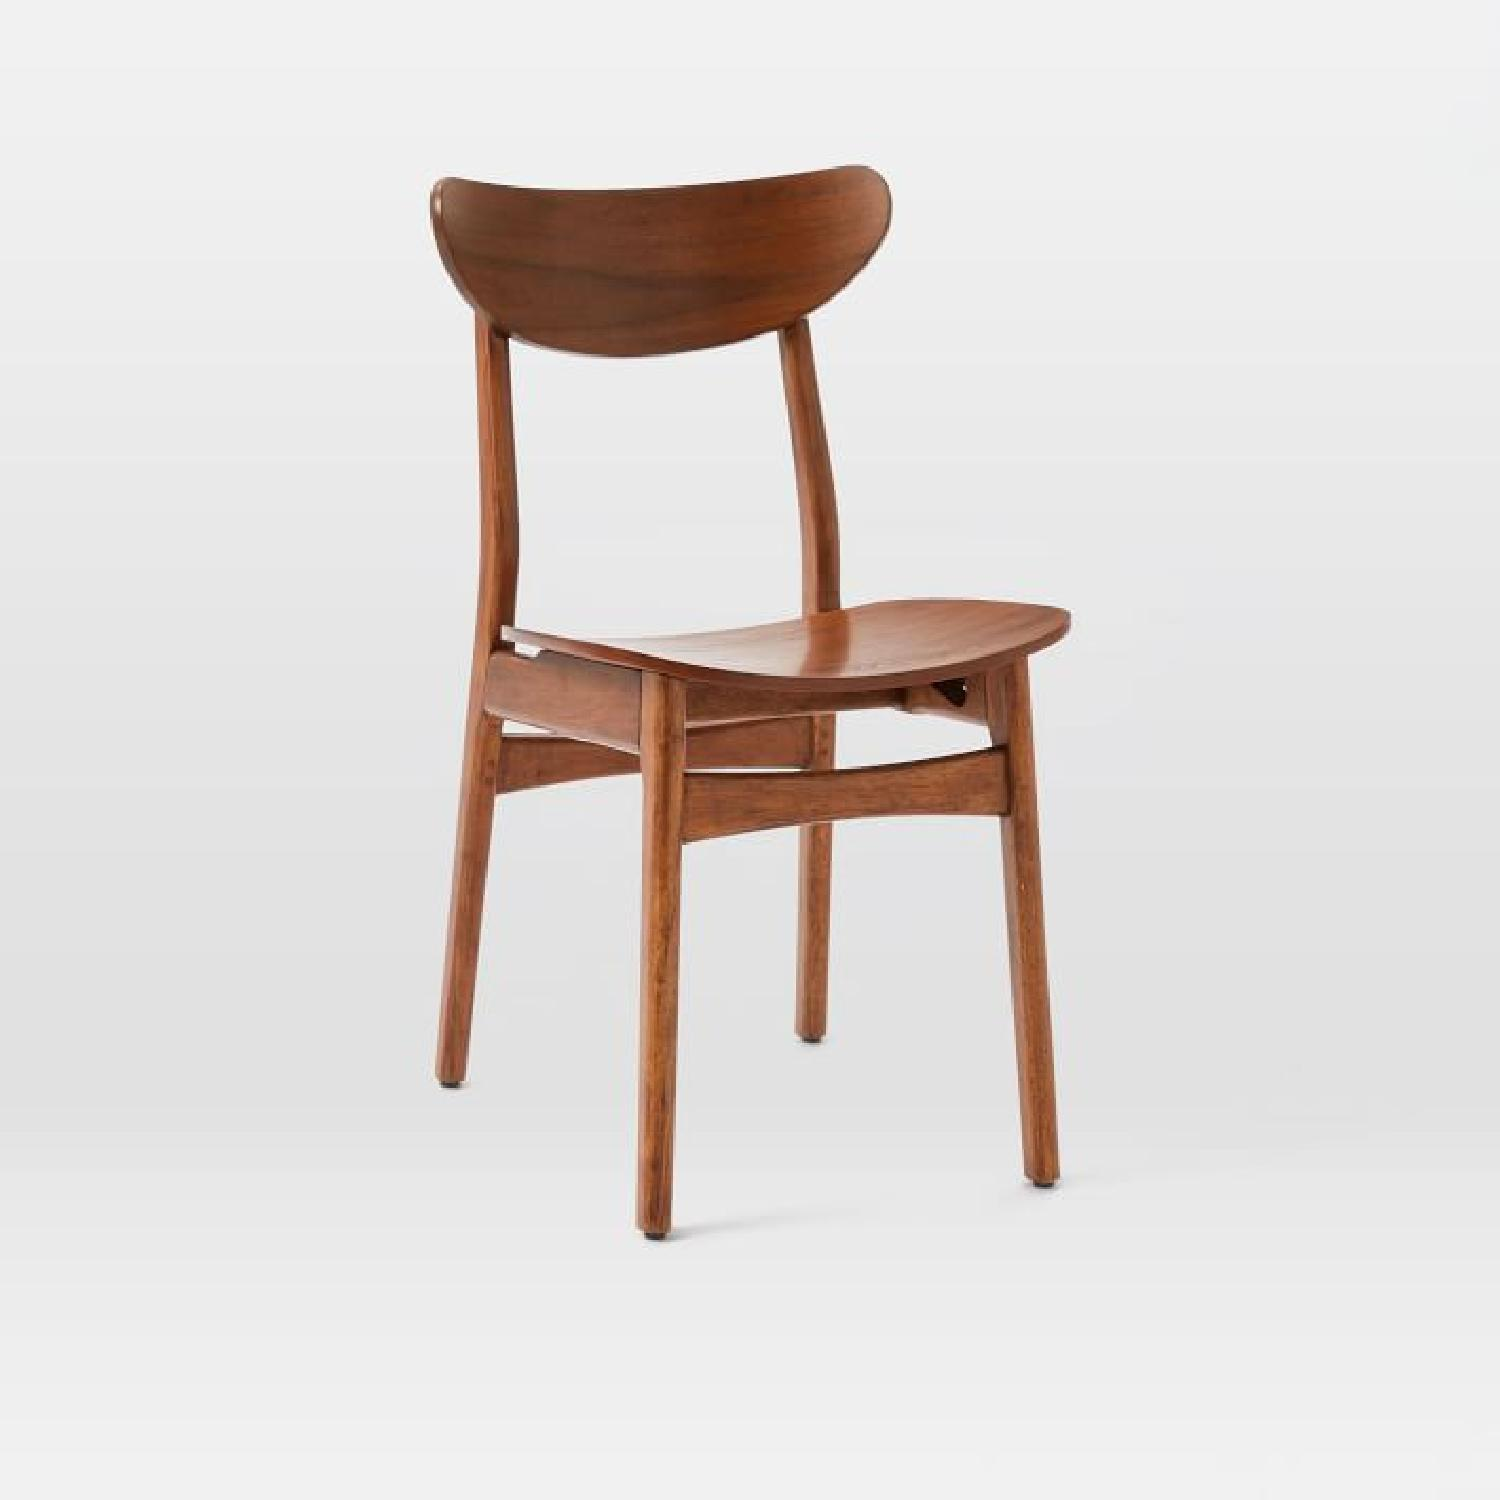 West Elm Classic Cafe Wood Dining Chairs in Walnut - image-0